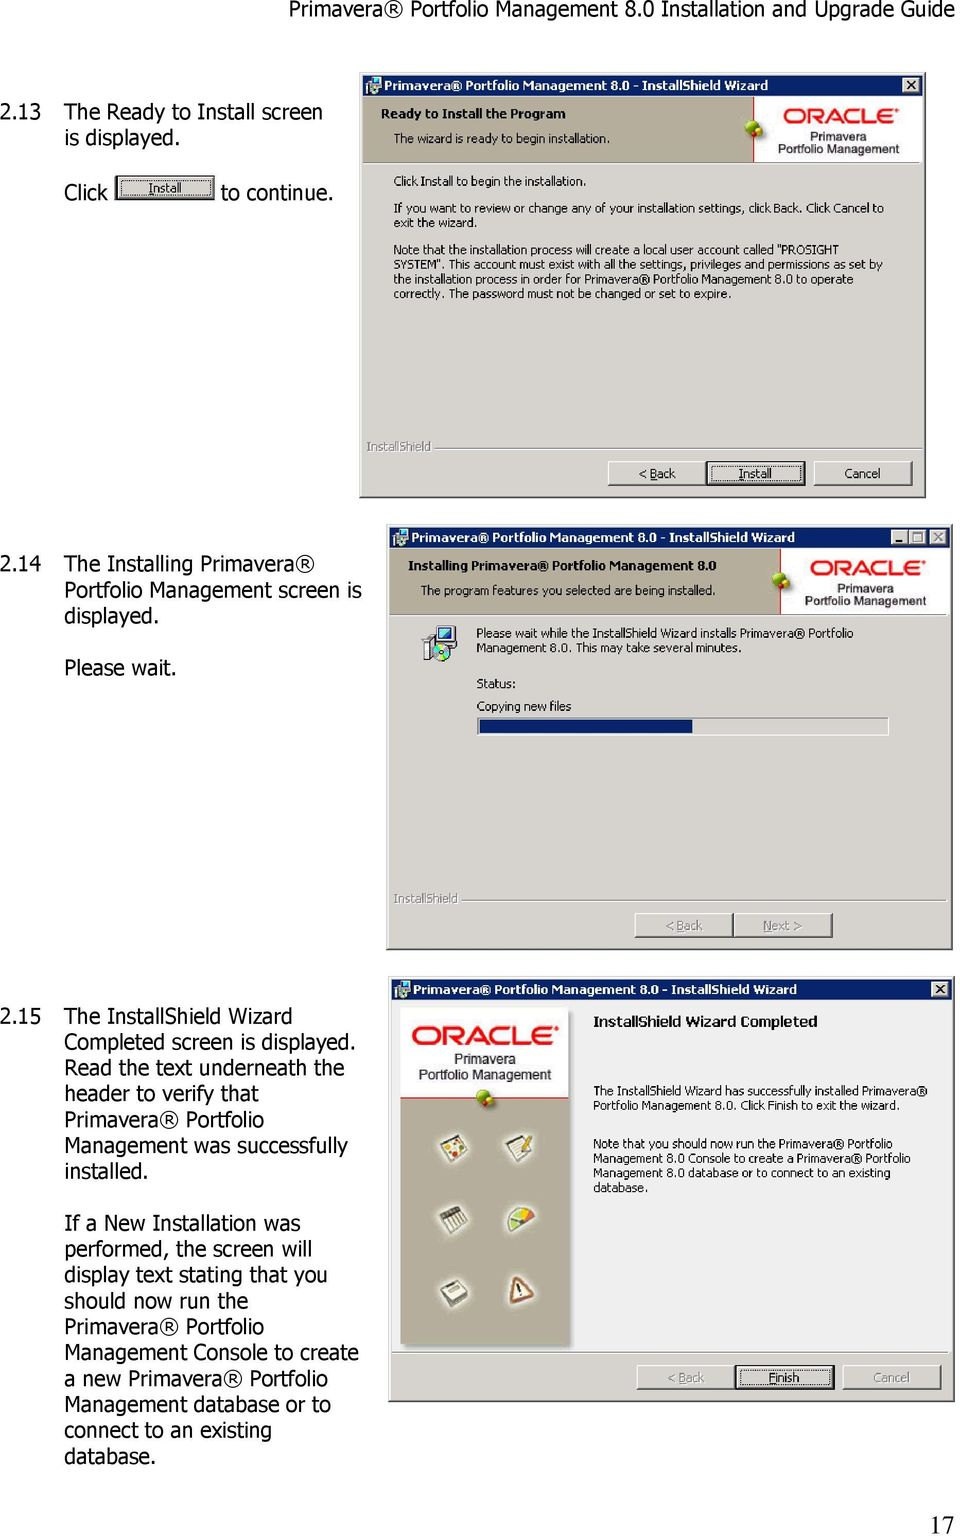 Read the text underneath the header to verify that Primavera Portfolio Management was successfully installed.